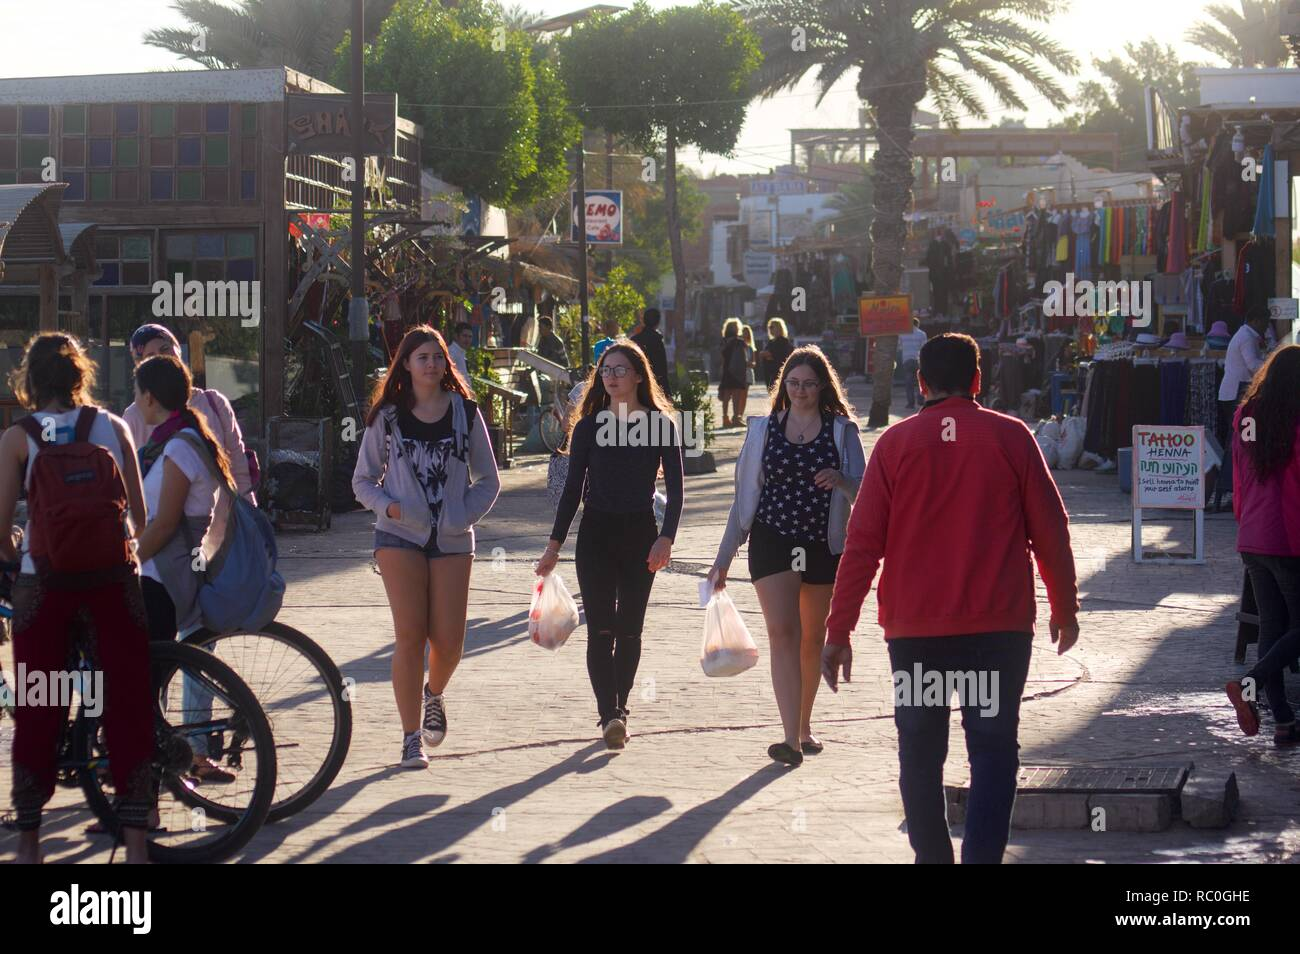 Holidaymakers strolling on the main drag, Dahab, Egypt - Stock Image